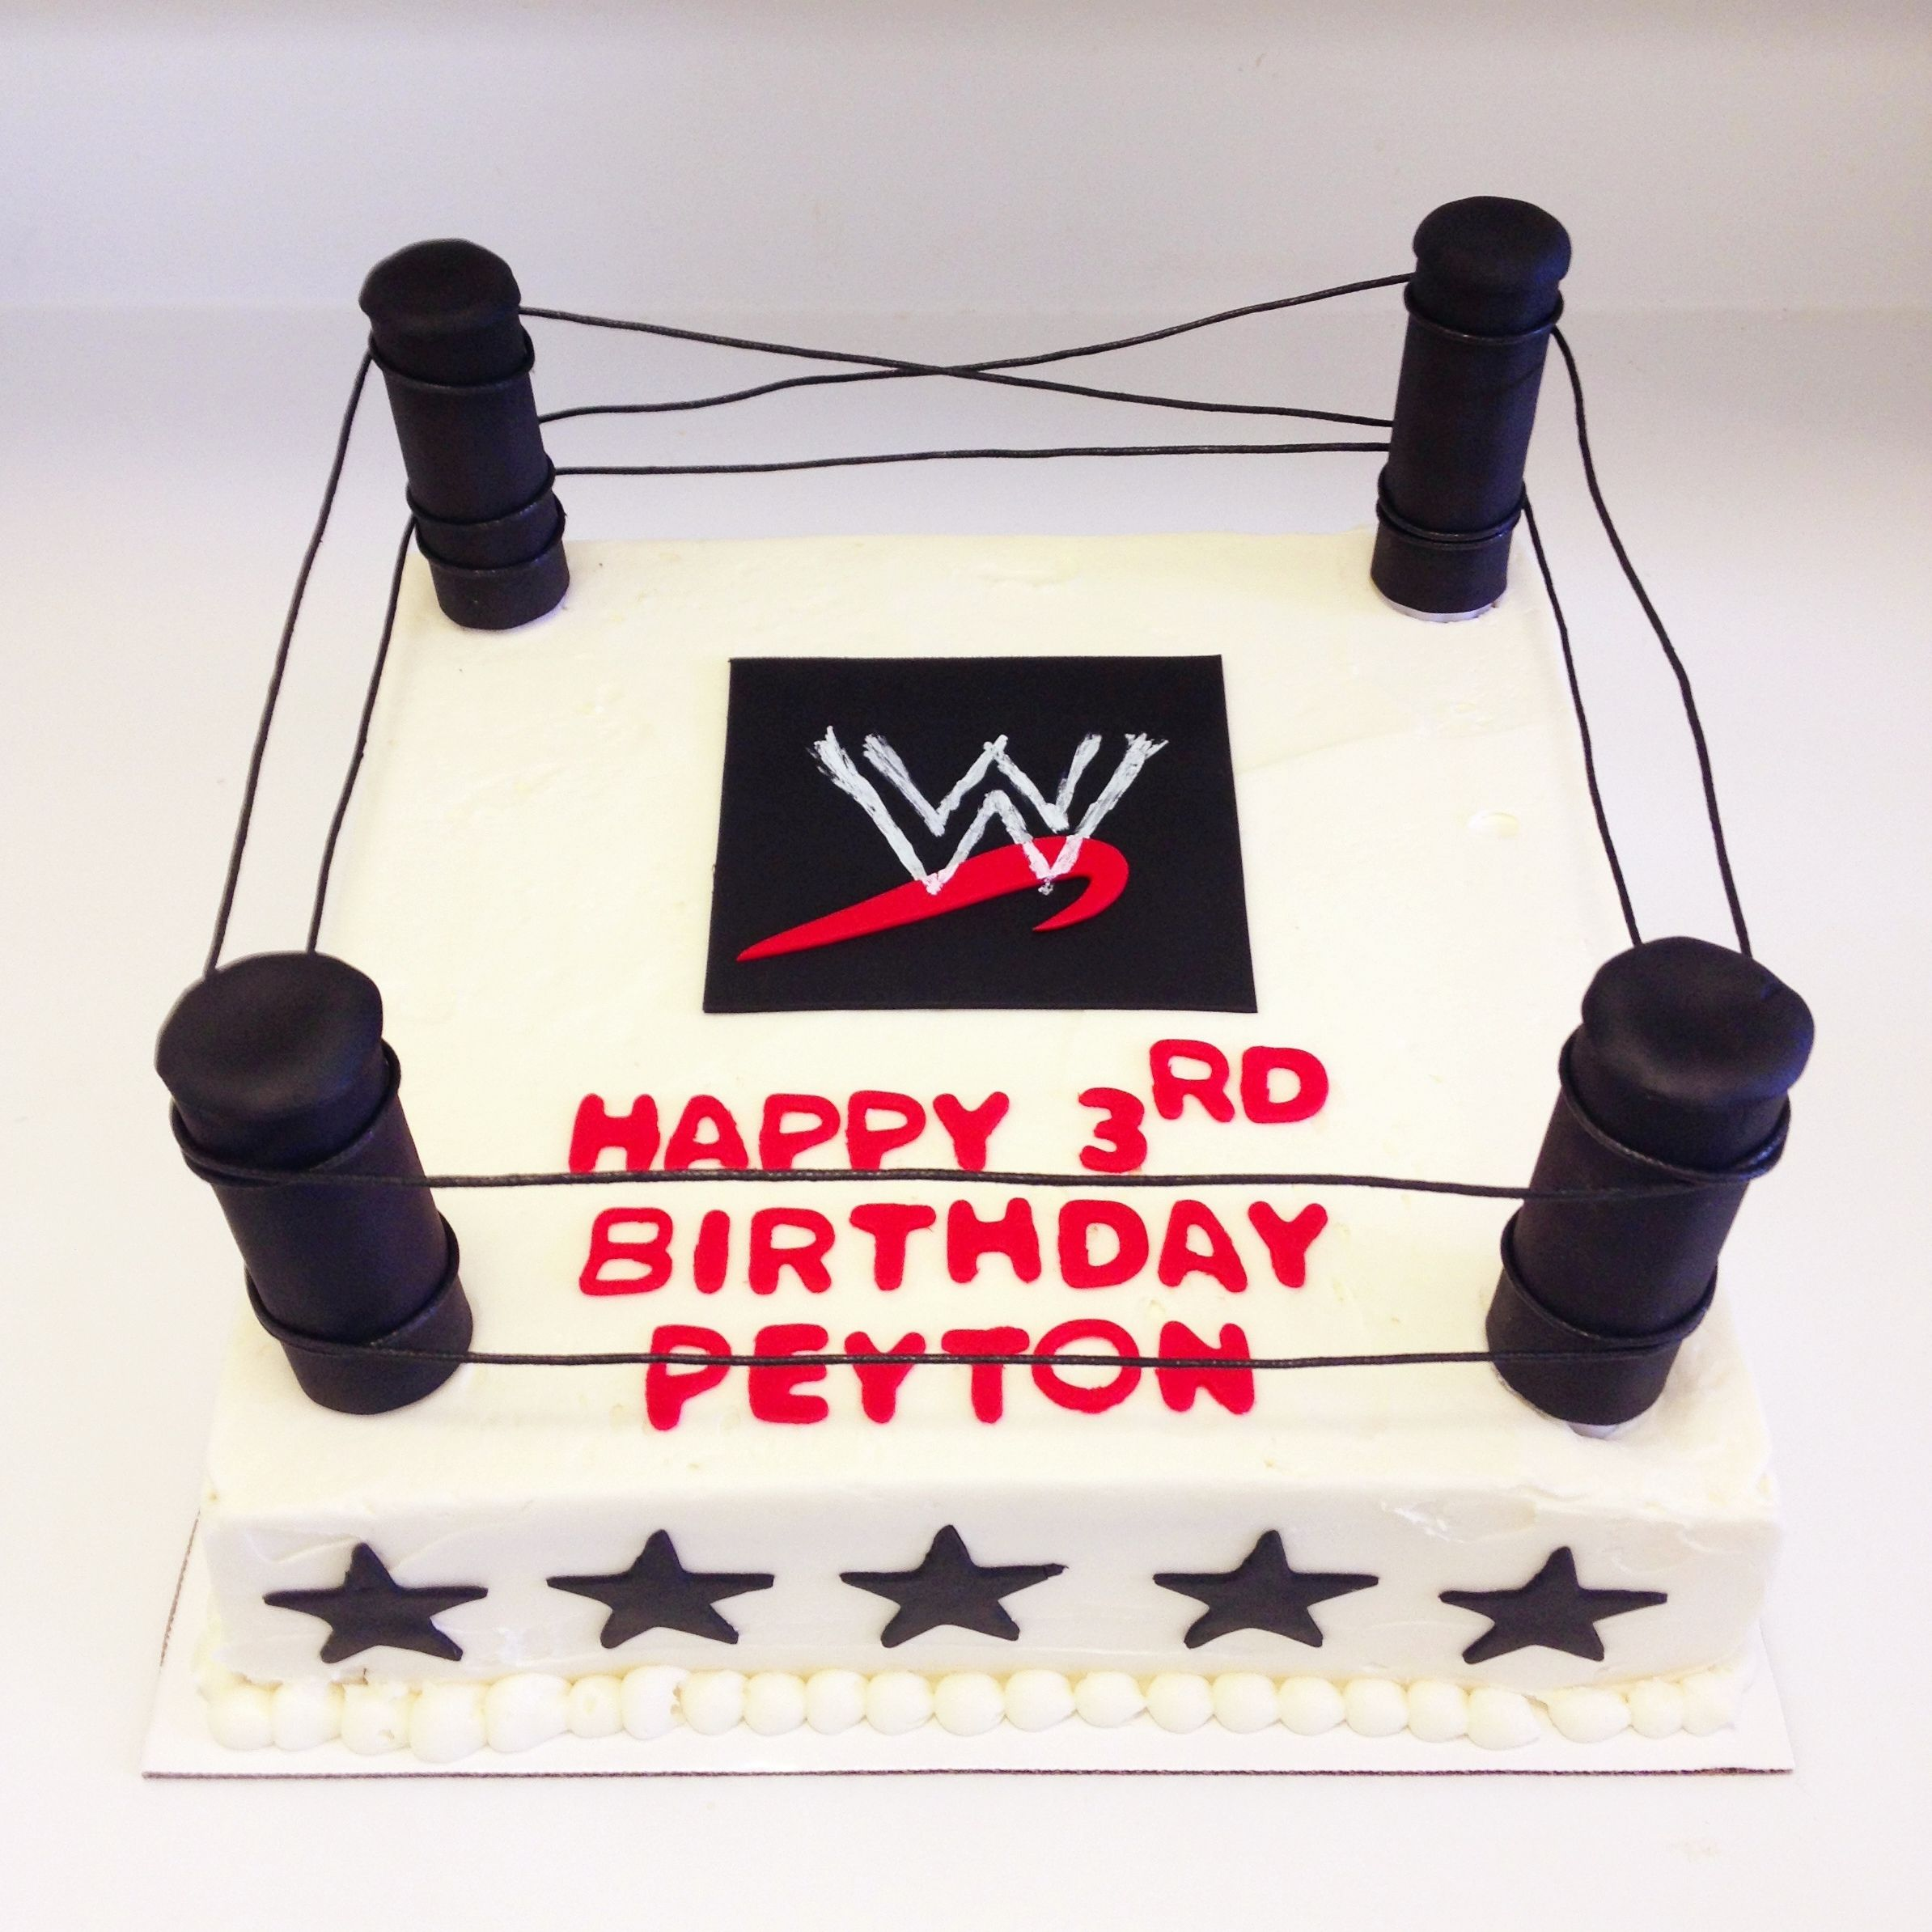 Wrestling ring birthday cake - Sweets by Millie